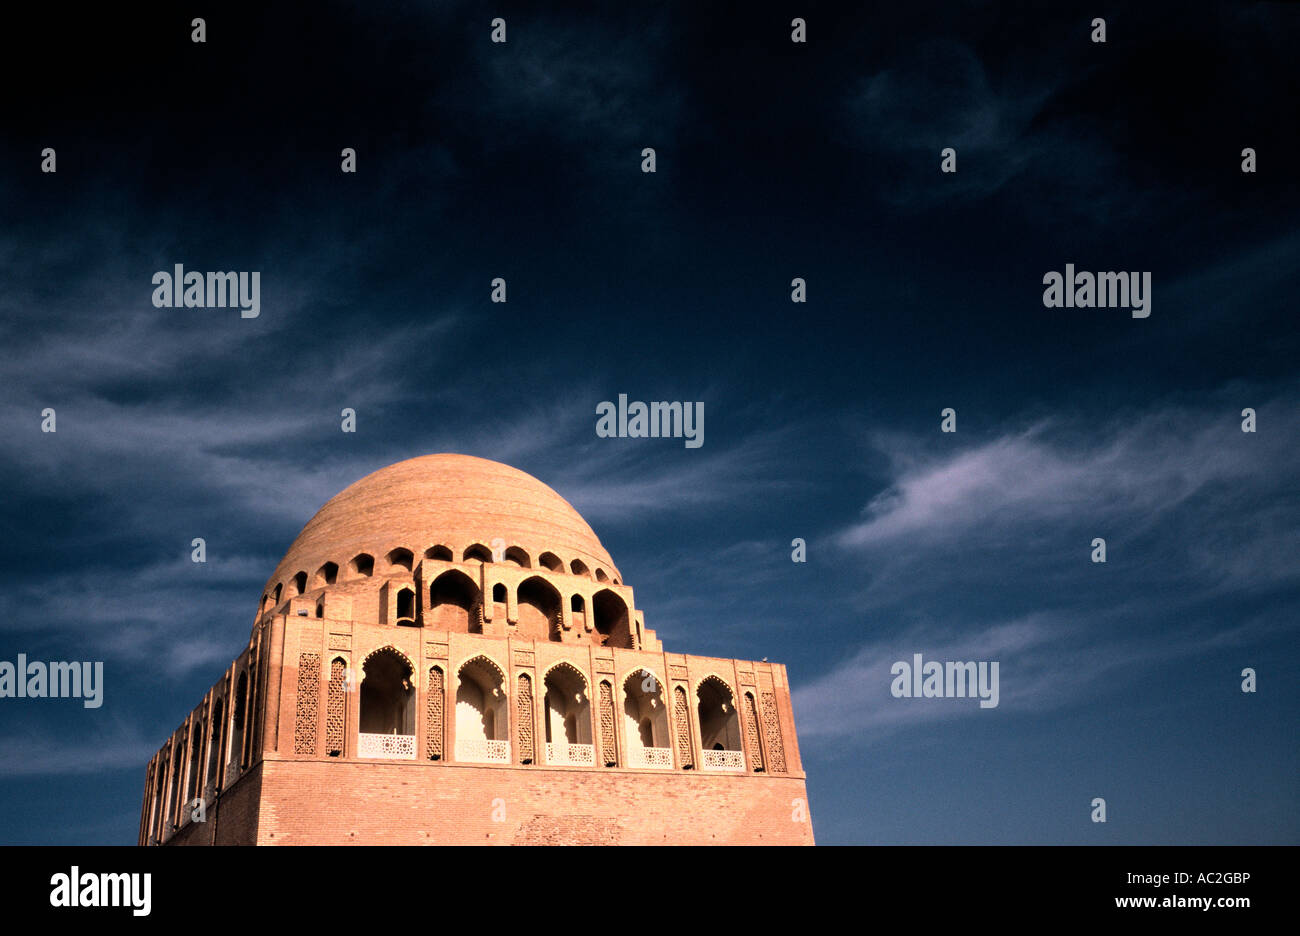 May 10, 2006 - The 12th-century mausoleum of Sultan Sanjar, a Seljuk tomb in ancient  Merv (Mary) in Turkmenistan. Stock Photo